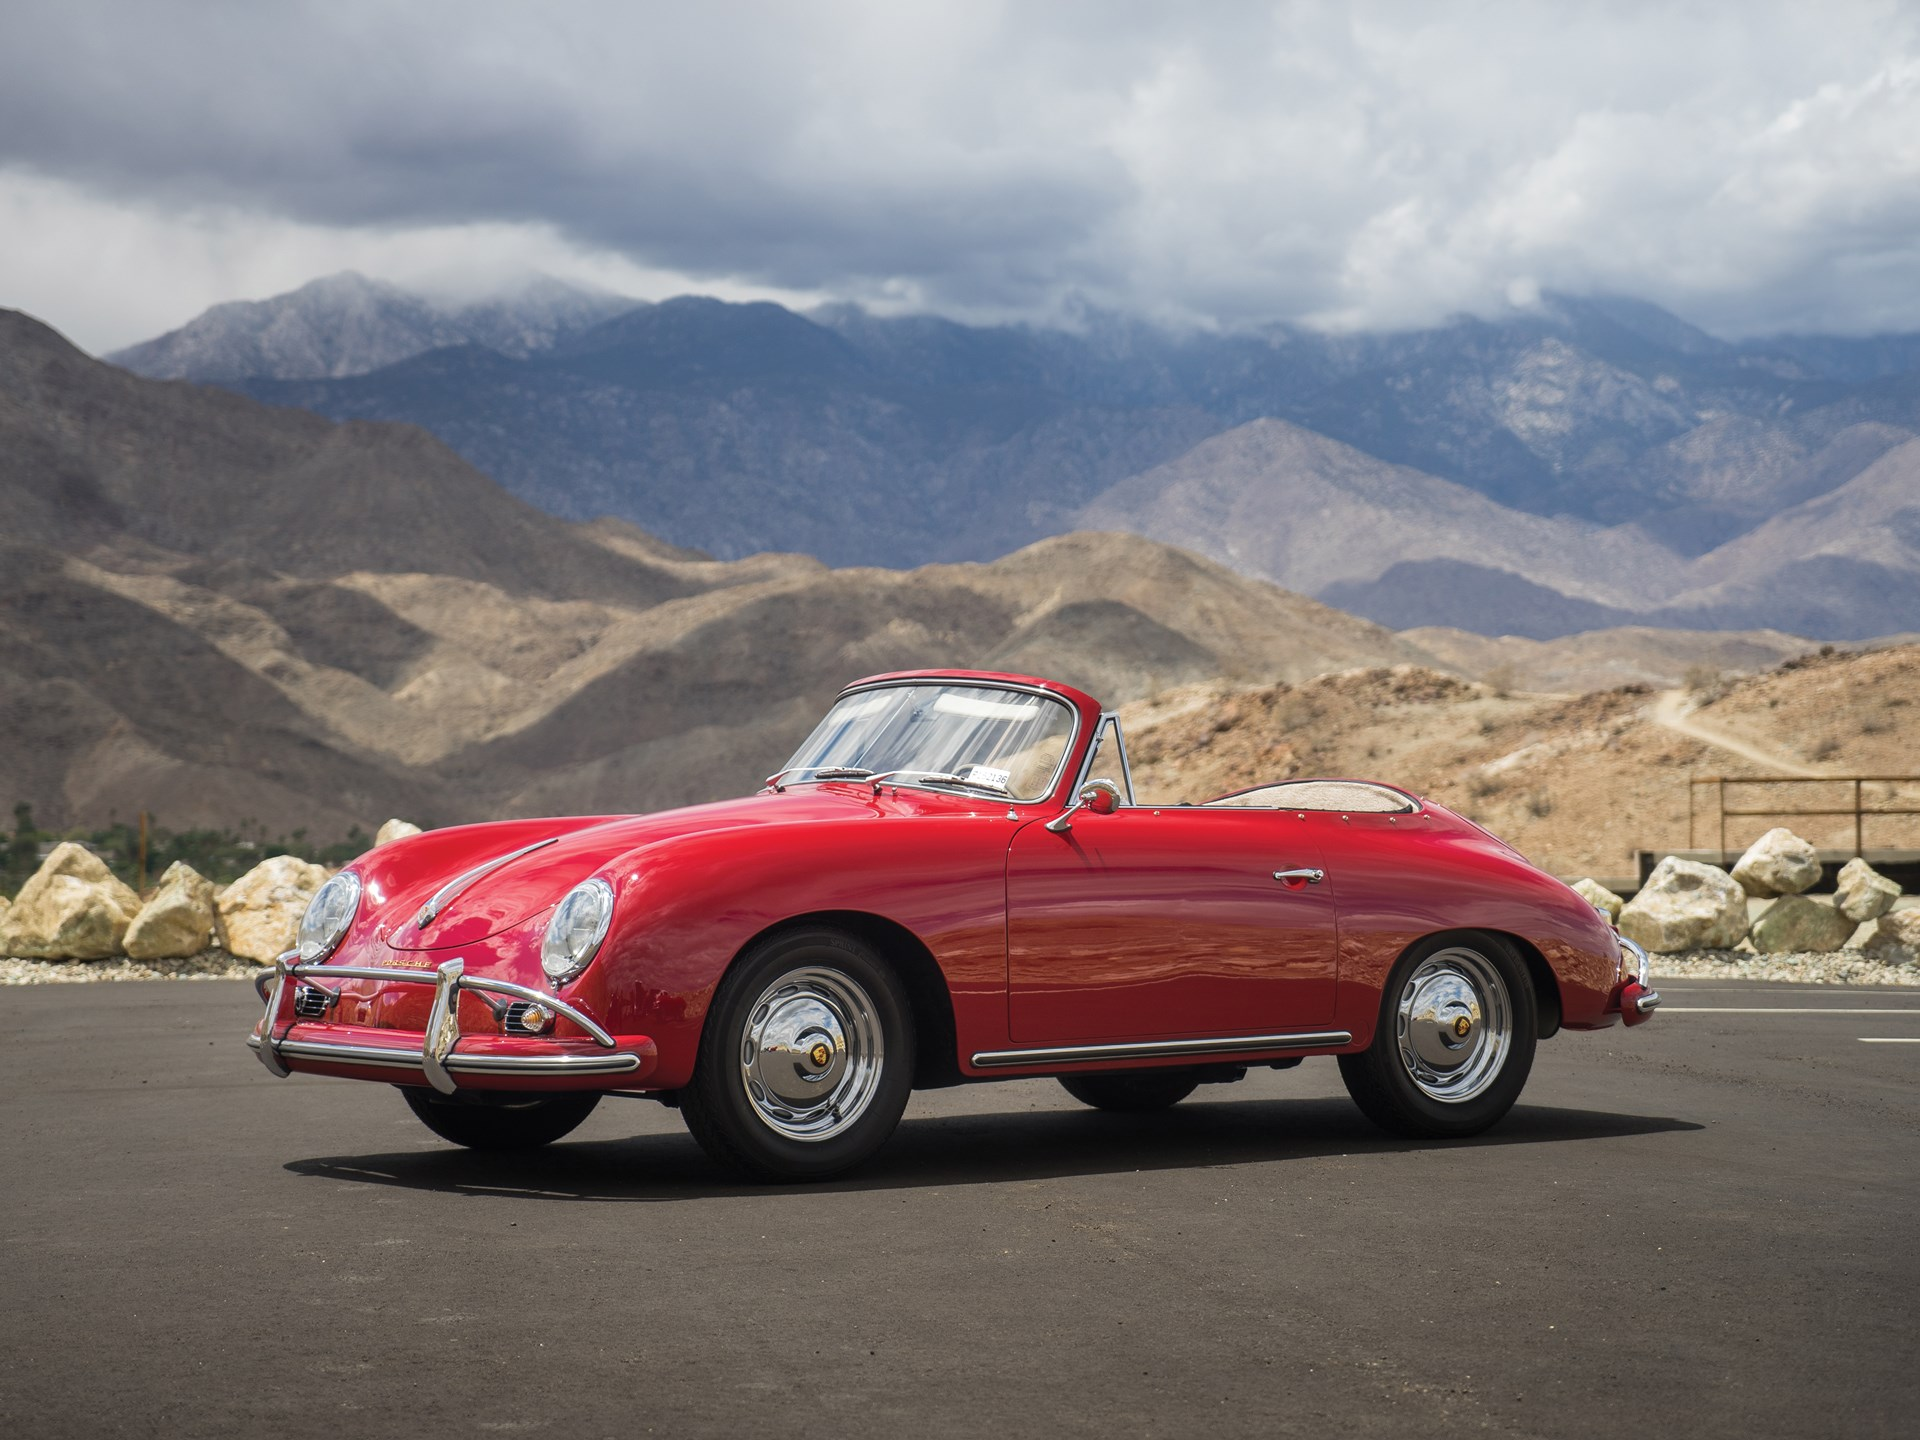 rm sotheby's 1959 porsche 356 a 1600 cabriolet by reutter automotive engine wires harness wiring chart 1959 porsche 356 a 1600 cabriolet by reutter